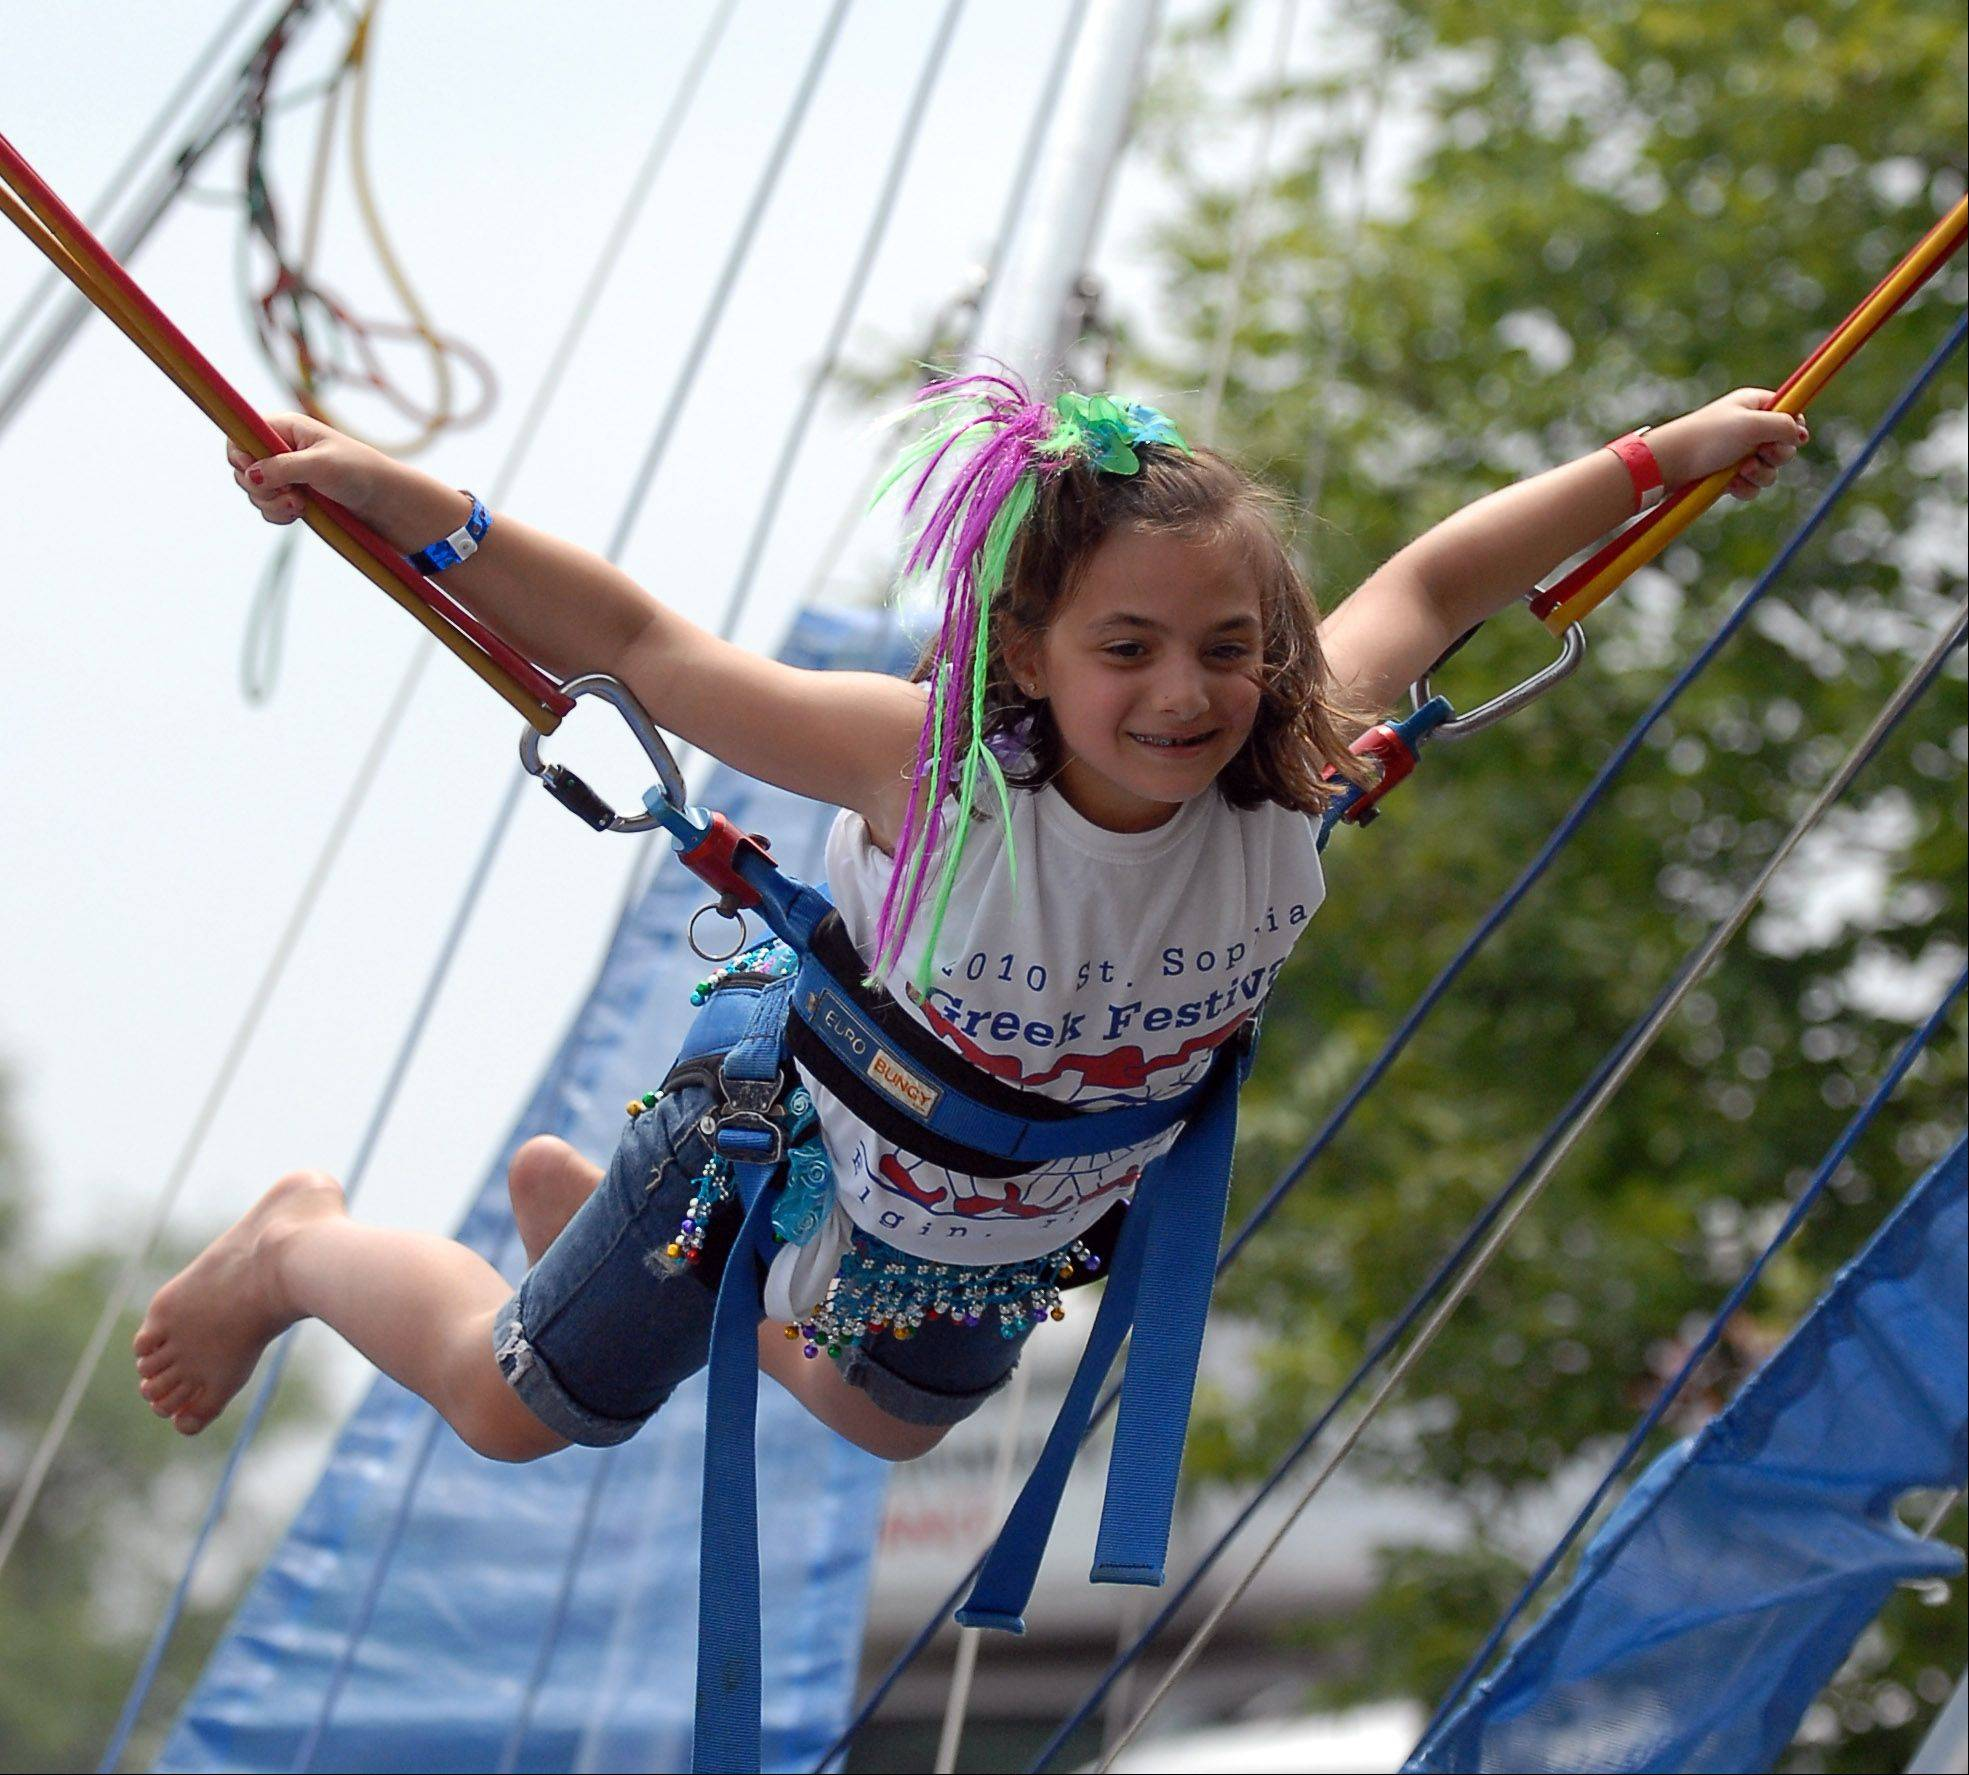 On Sunday, Stella Frangiadakis, 8, of Arlington Heights, enjoyed the kids bungee activity at the St. Sophia Greek Orthodox Church's 33rd-annual Greek Festival in Elgin. Stella attended the event with her father, Zach Frangiadakis of Arlington Heights. They are both members of the church.